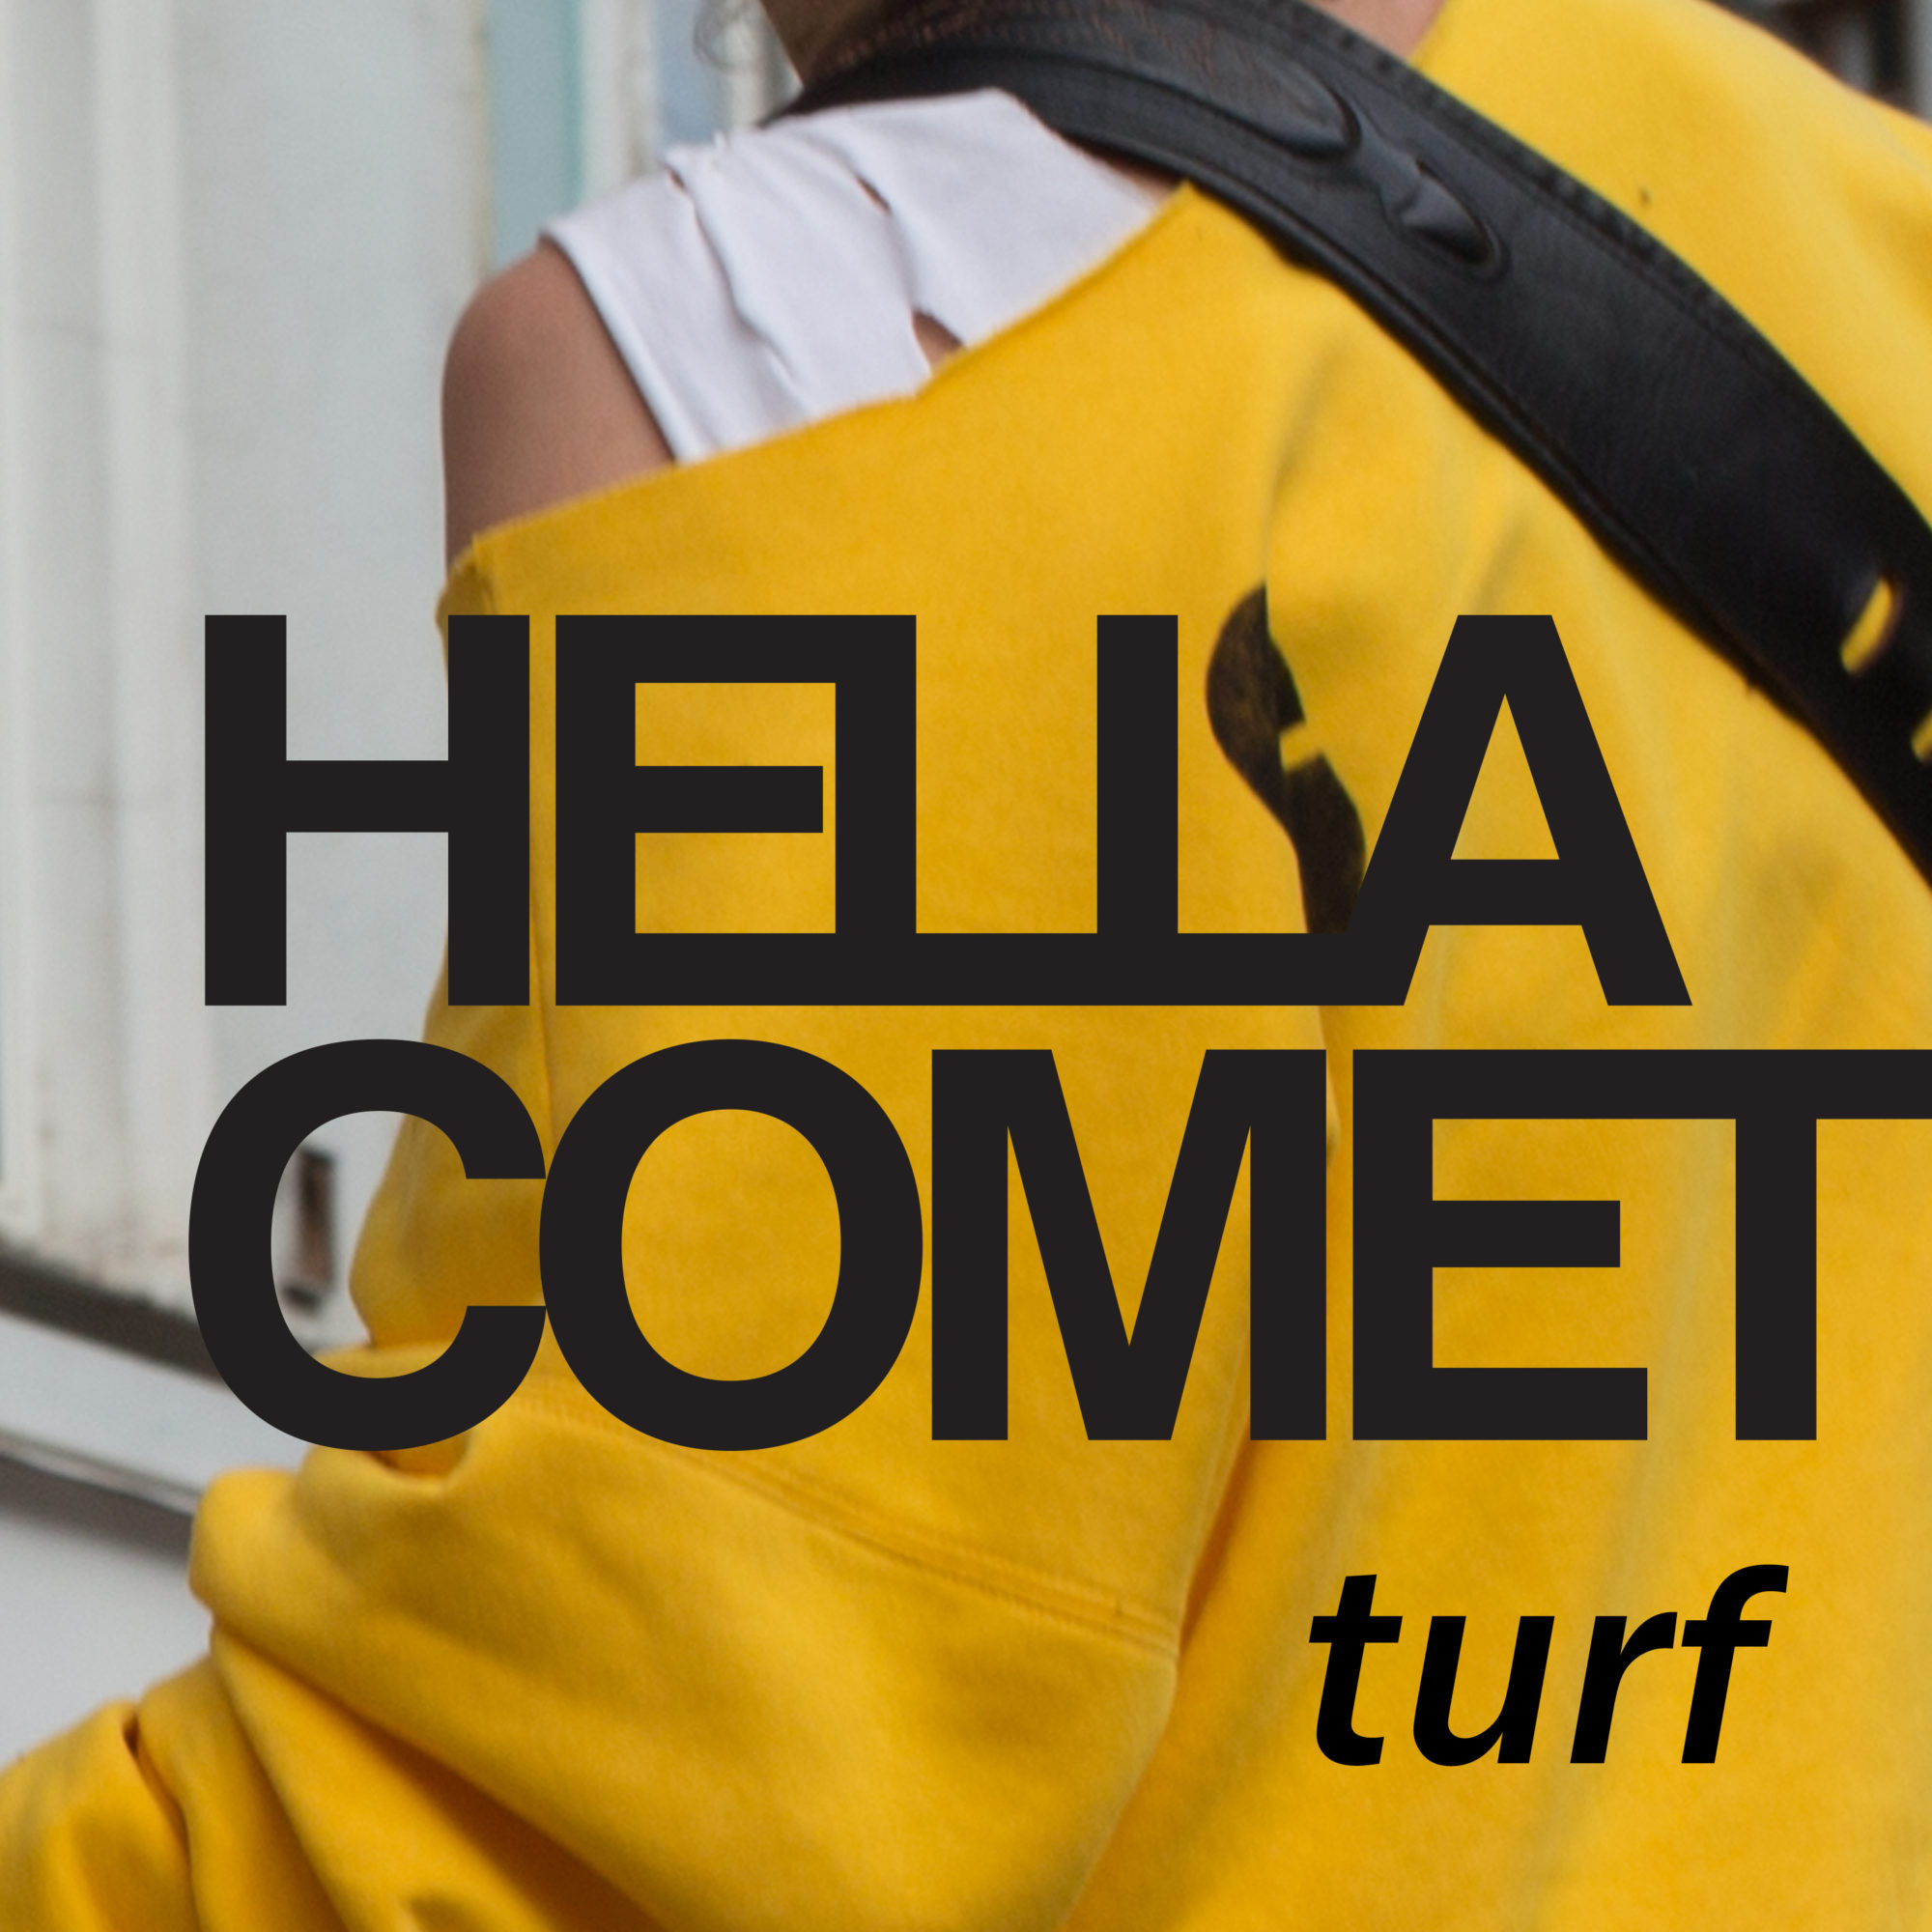 Hella Comet Band Music Austria Single Turf Cover Artwork